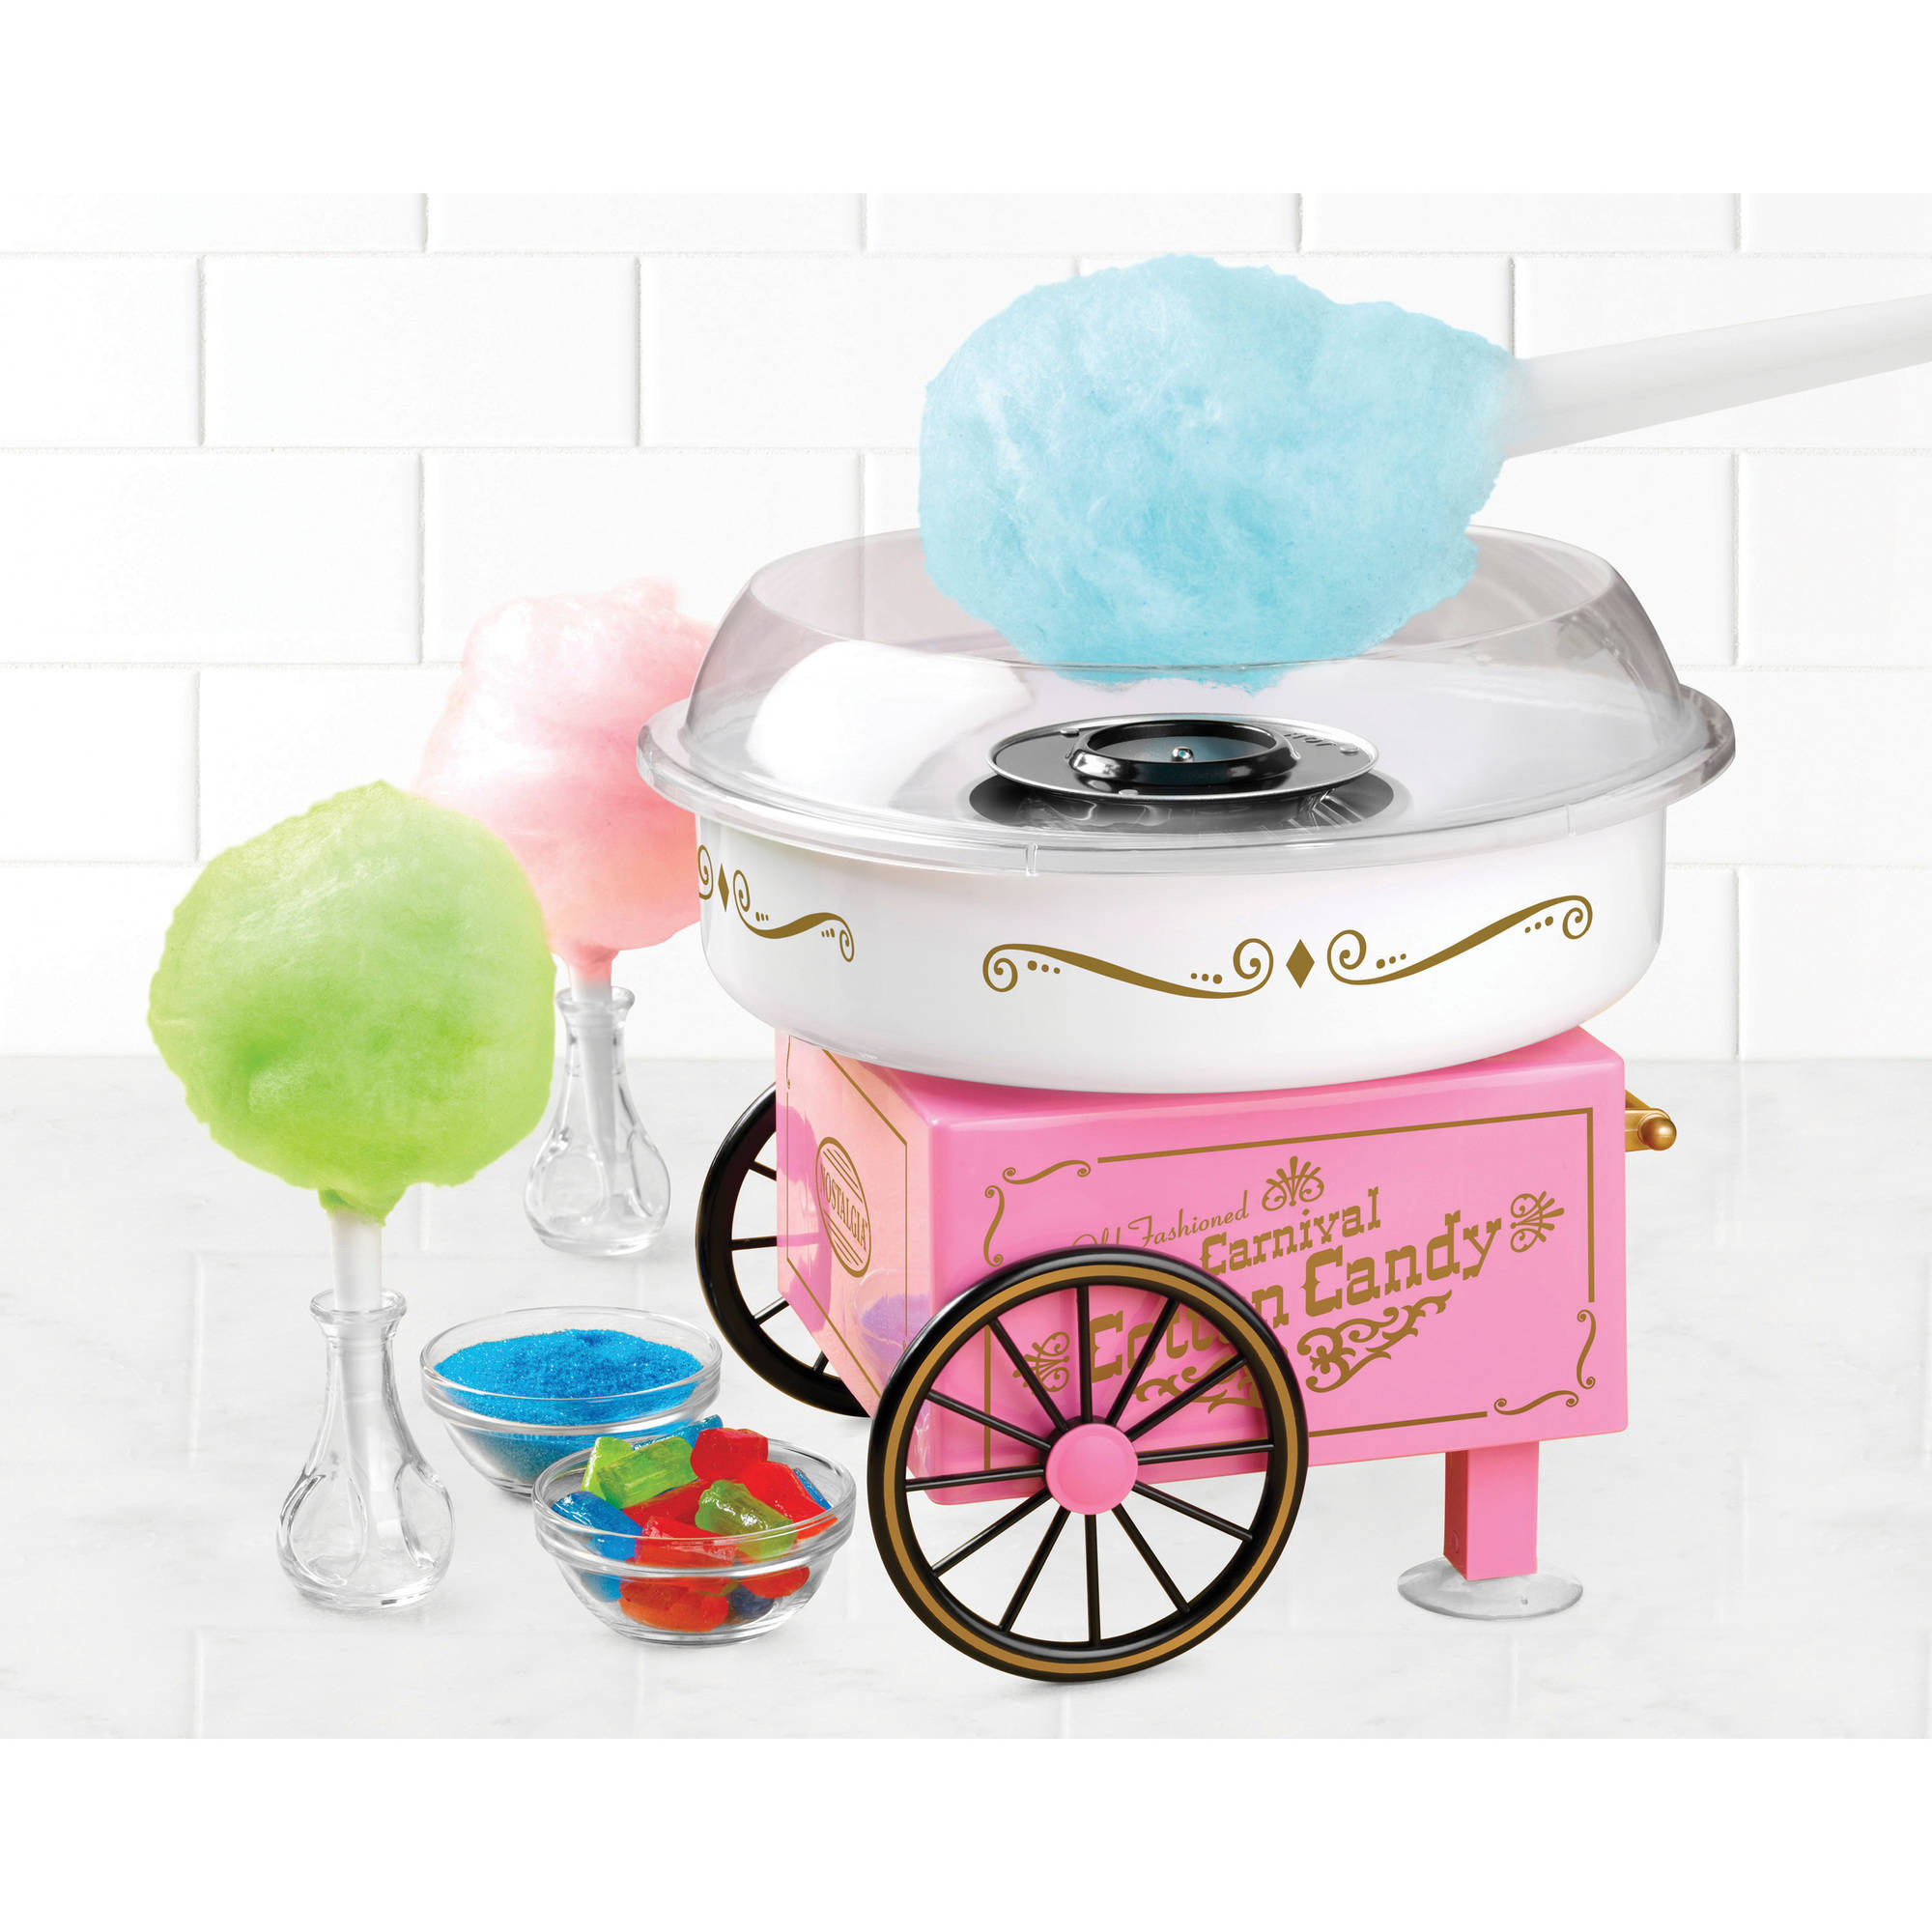 Nostalgia PCM305 Vintage Collection Hard and Sugar-Free Candy Cotton Candy Maker